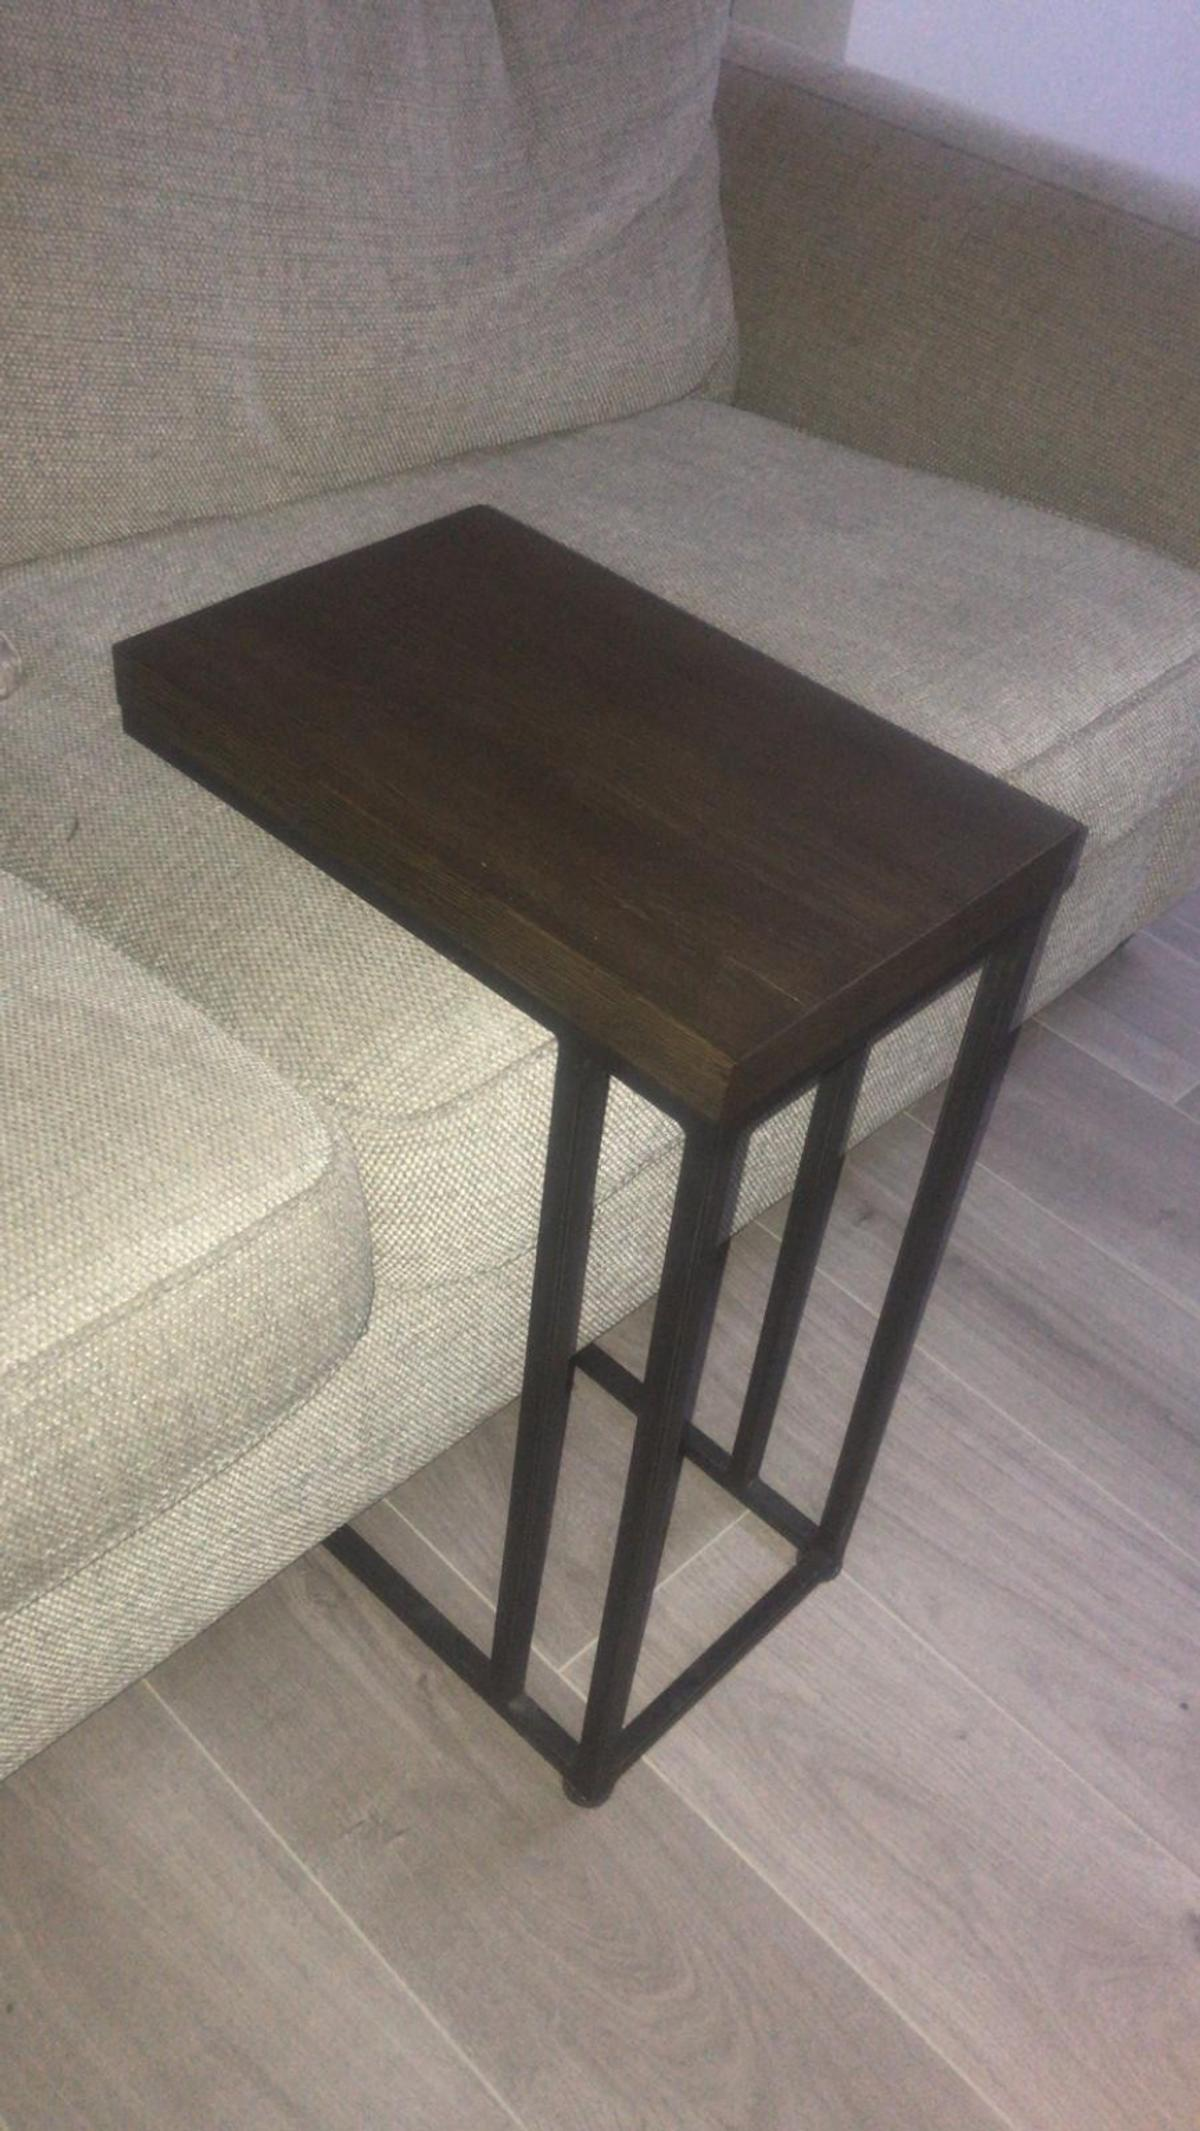 Sensational Calia Side Table John Lewis Rascalartsnyc Andrewgaddart Wooden Chair Designs For Living Room Andrewgaddartcom